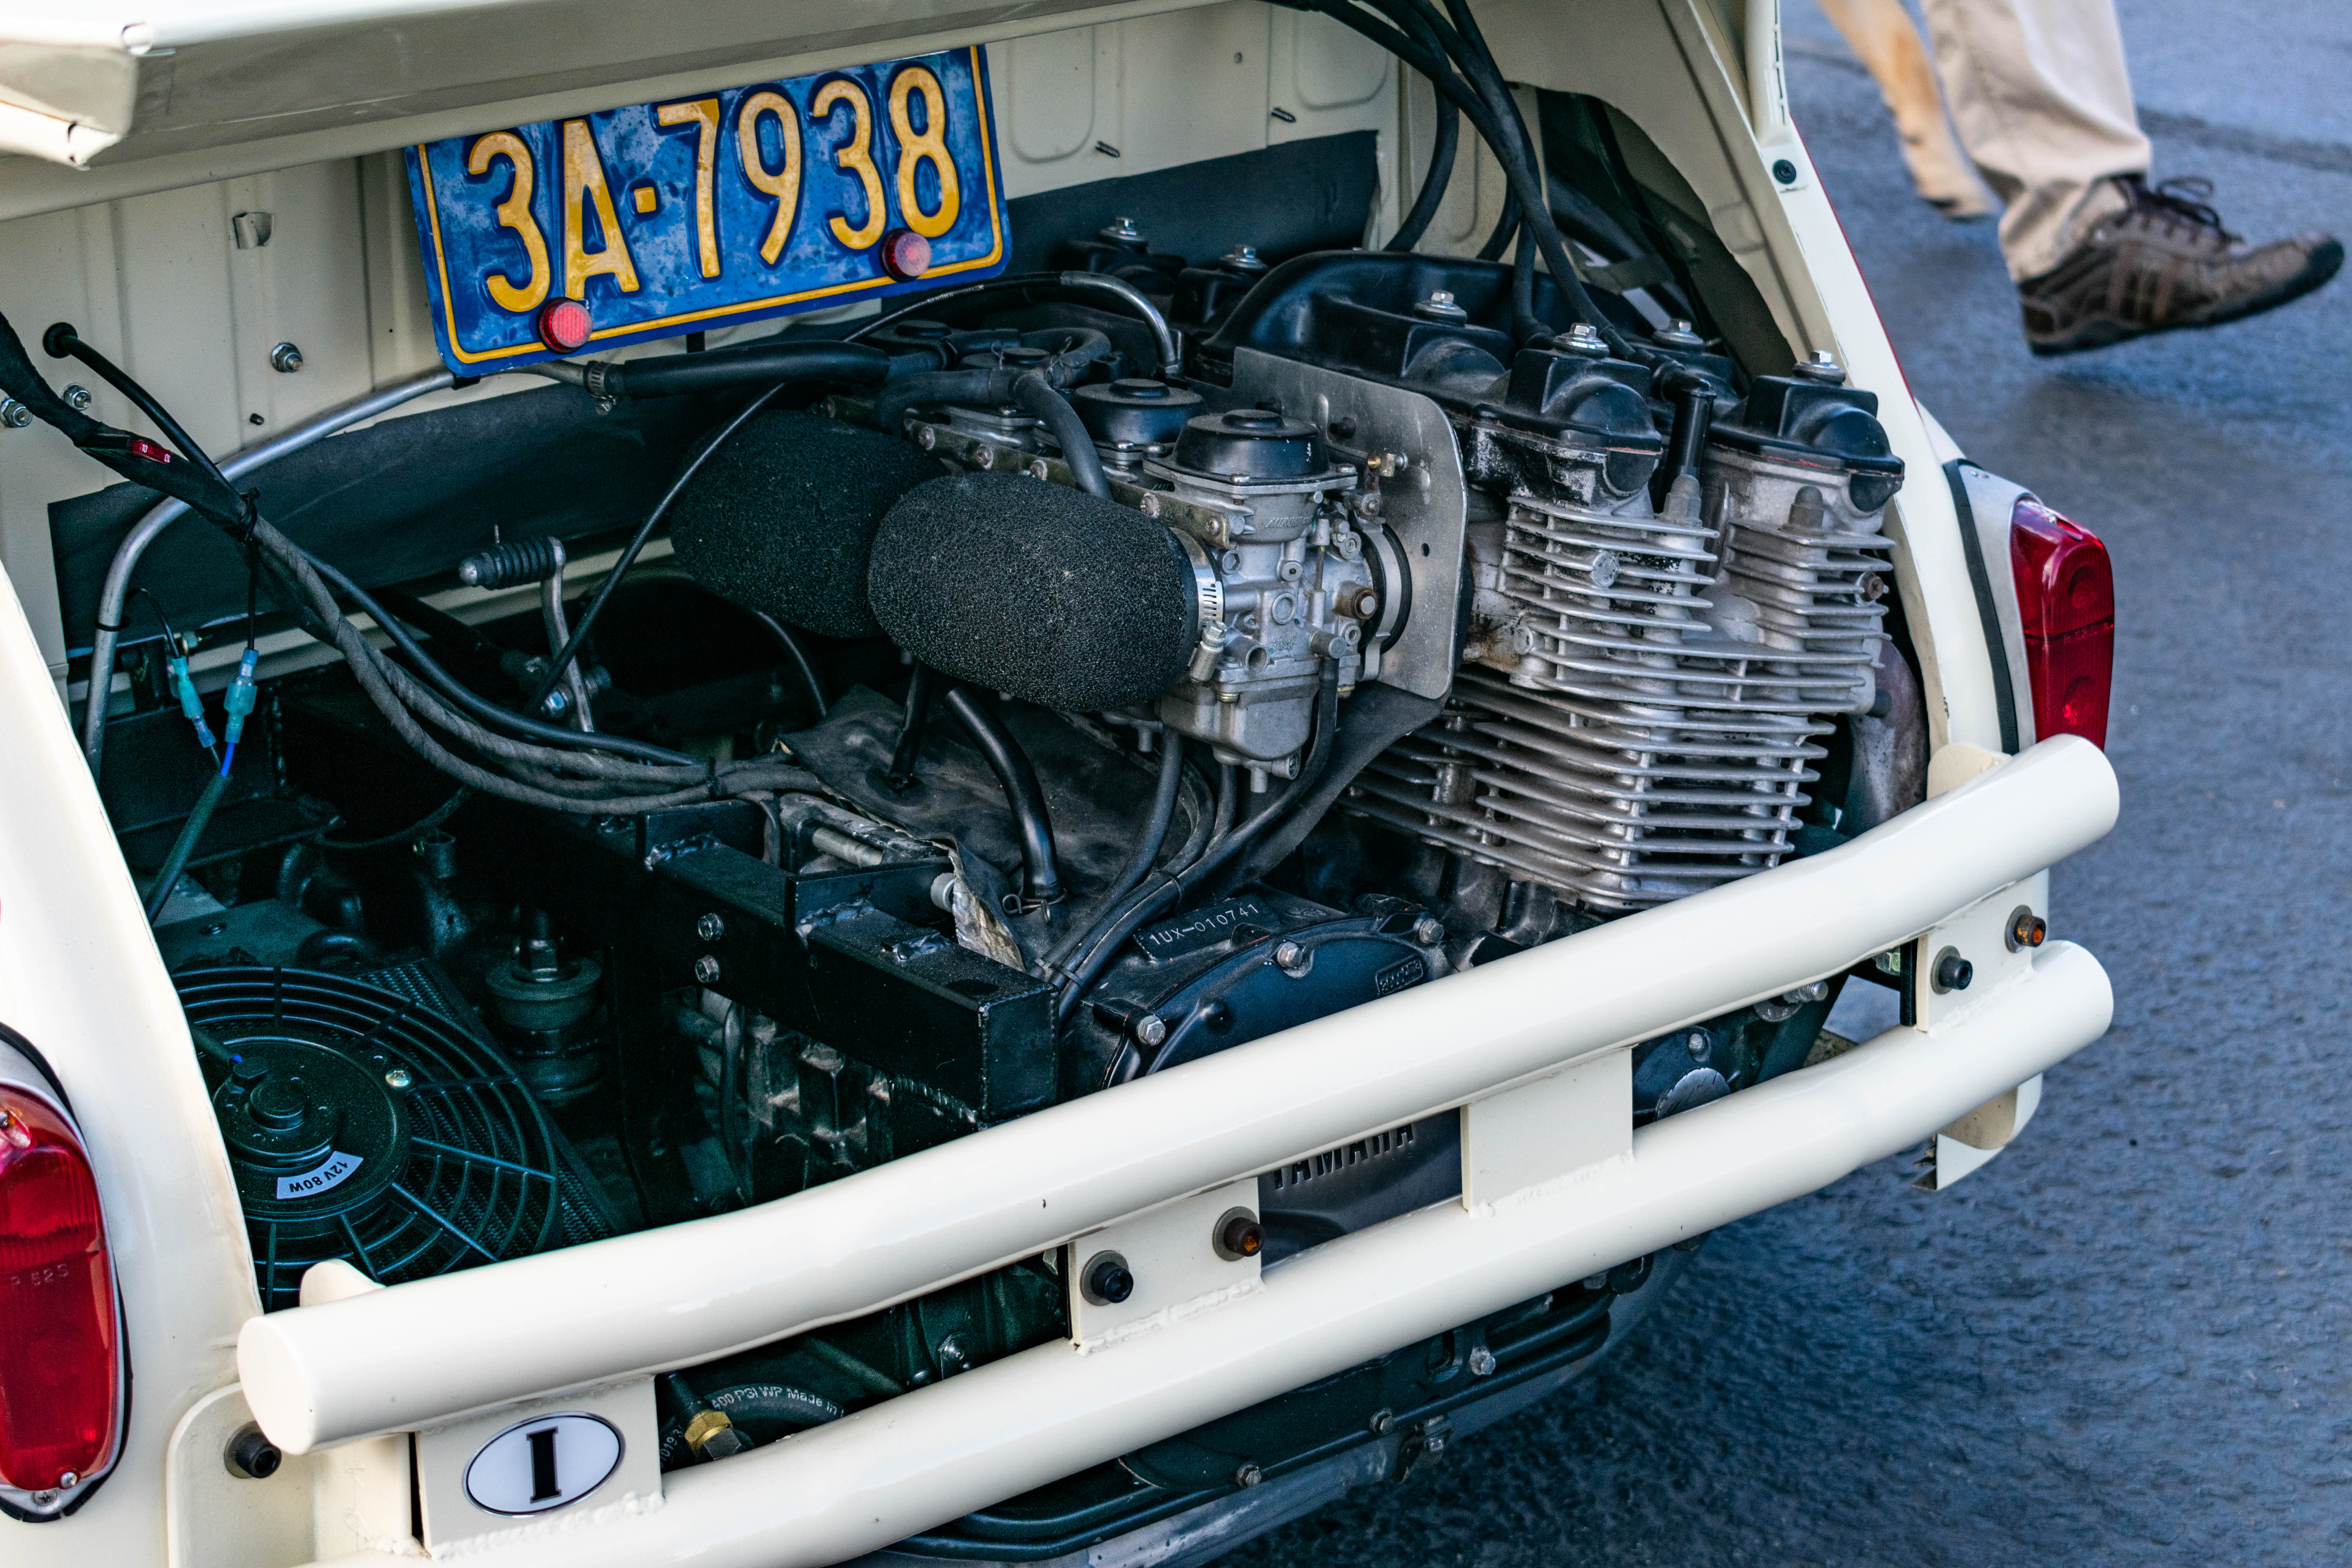 Yamaha Powered Fiat 600 Time Attack Hack Engine Wiring Looking At The Interior Of Car Name Game Seems To Be Simplicity A Pair Racing Buckets Simple Door Panels And Roll Cage Speak Volumes